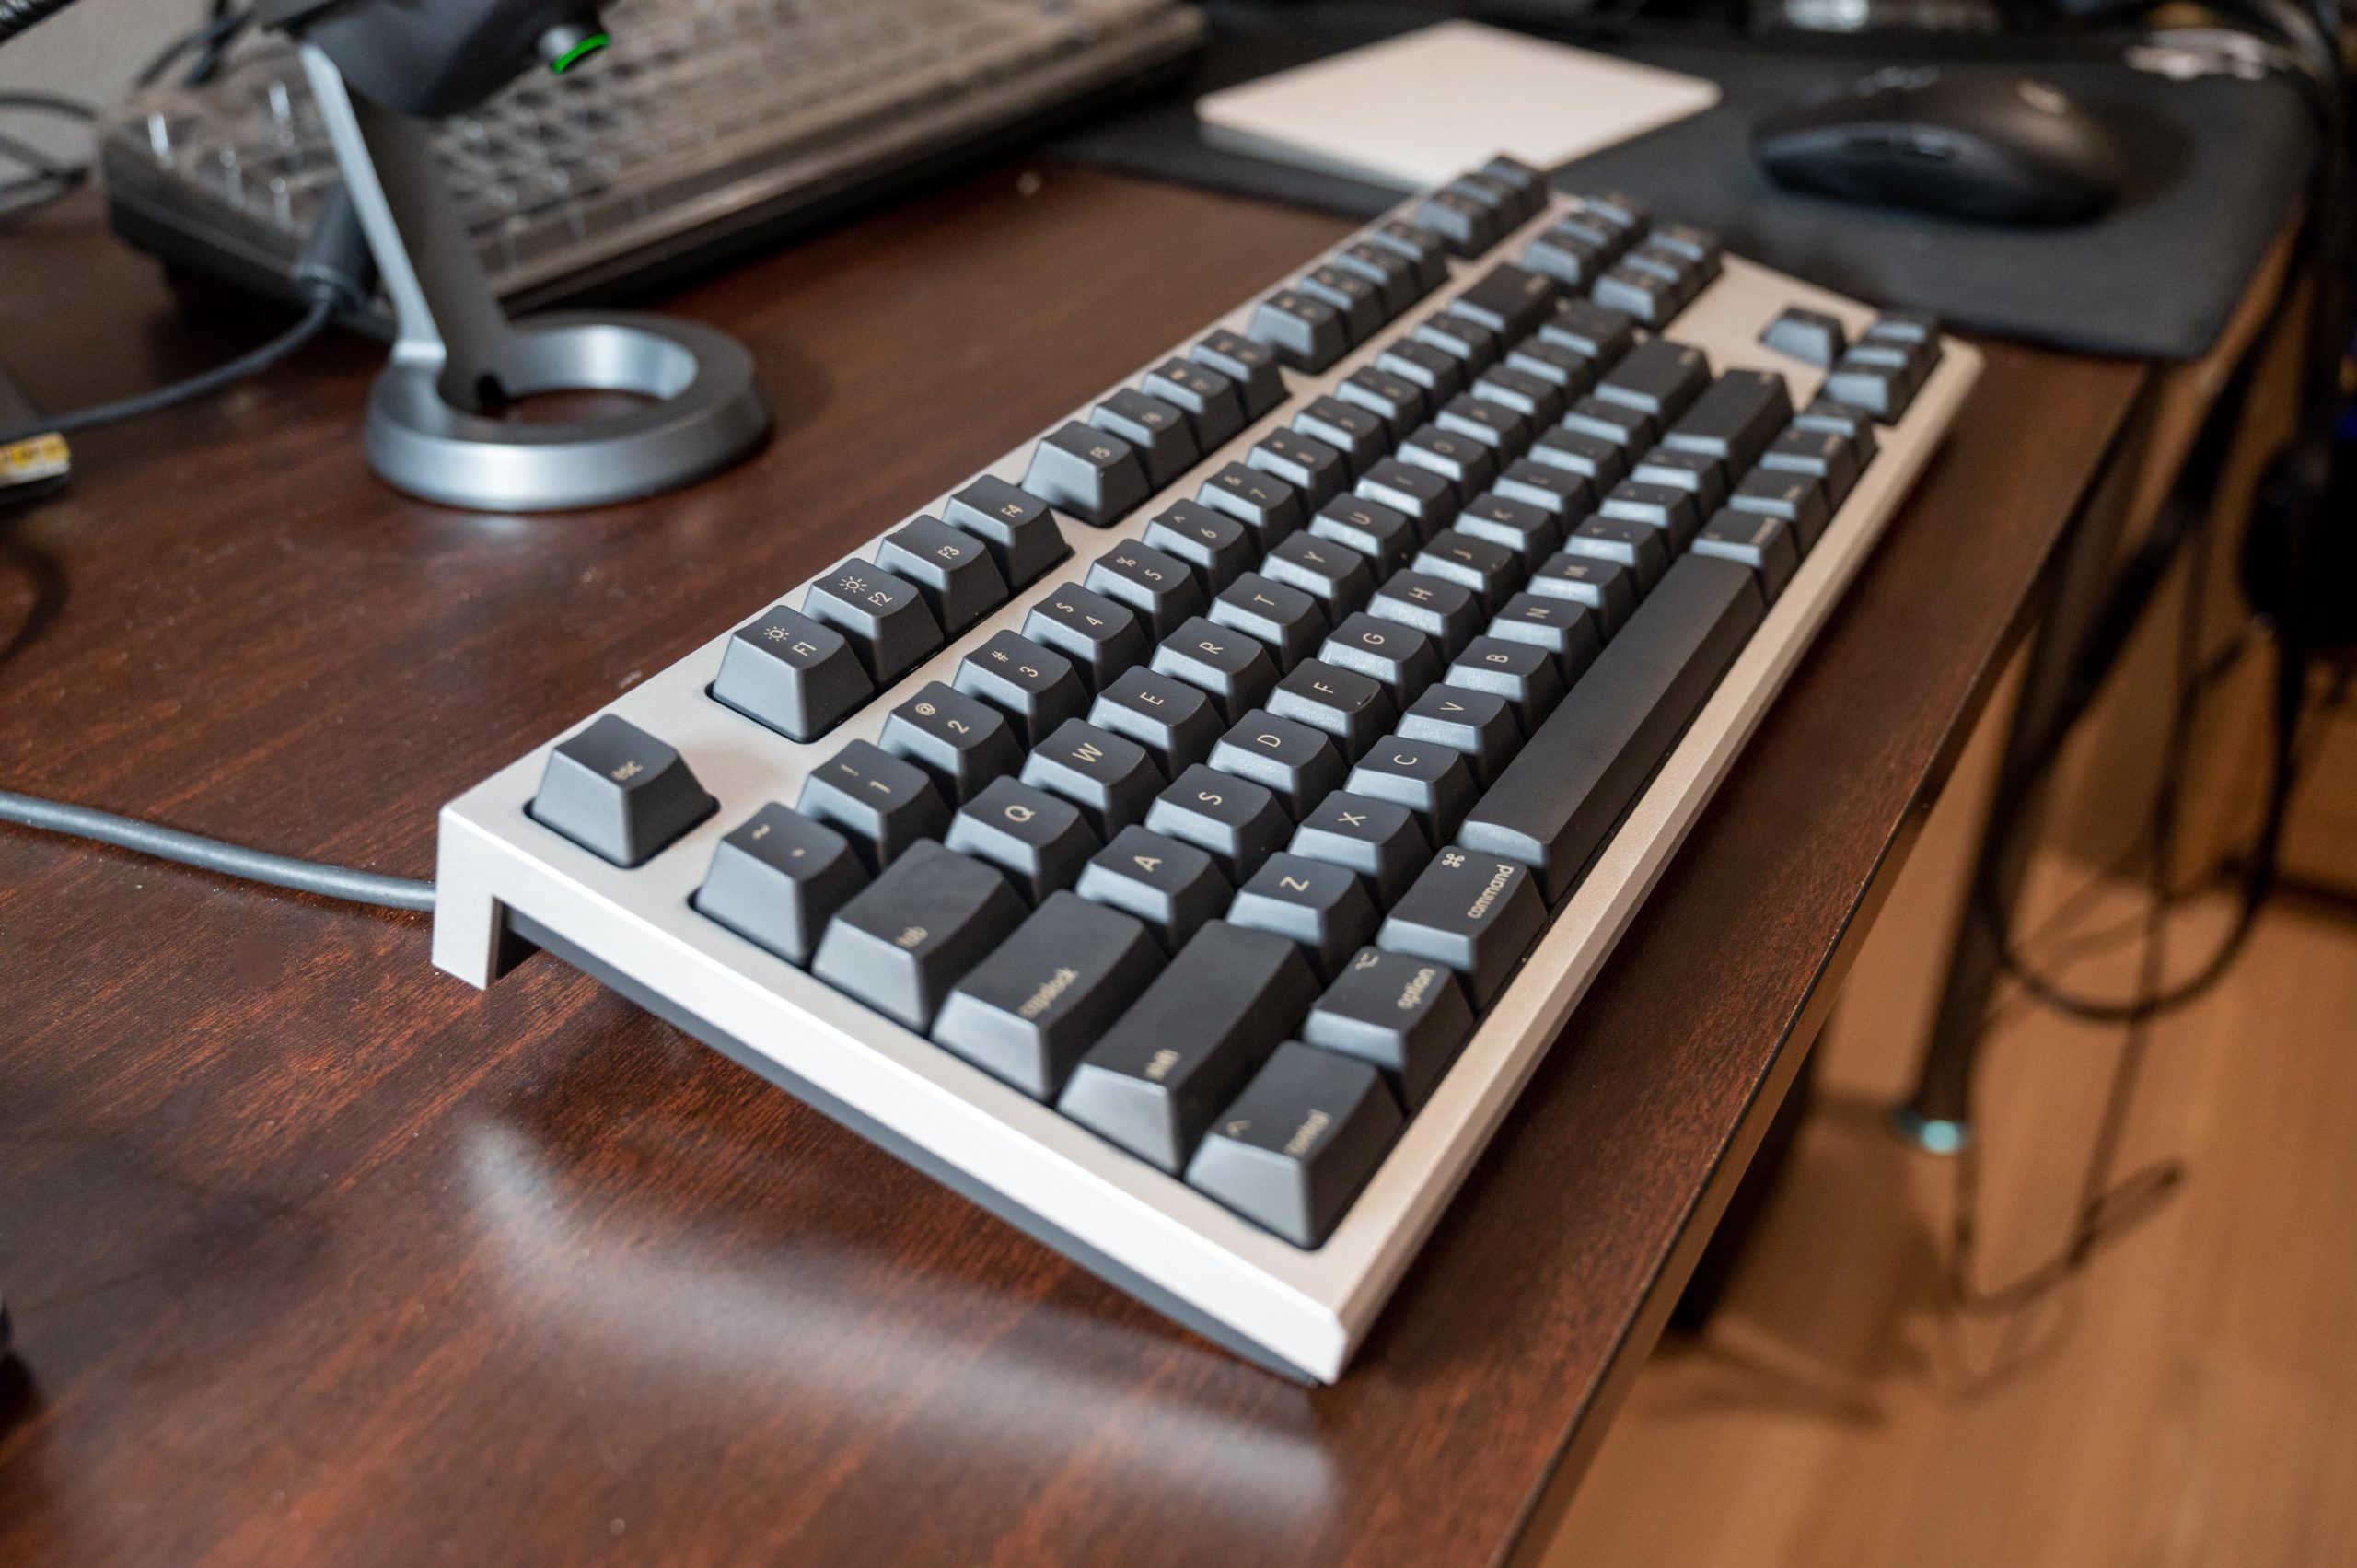 Realforce Keyboard